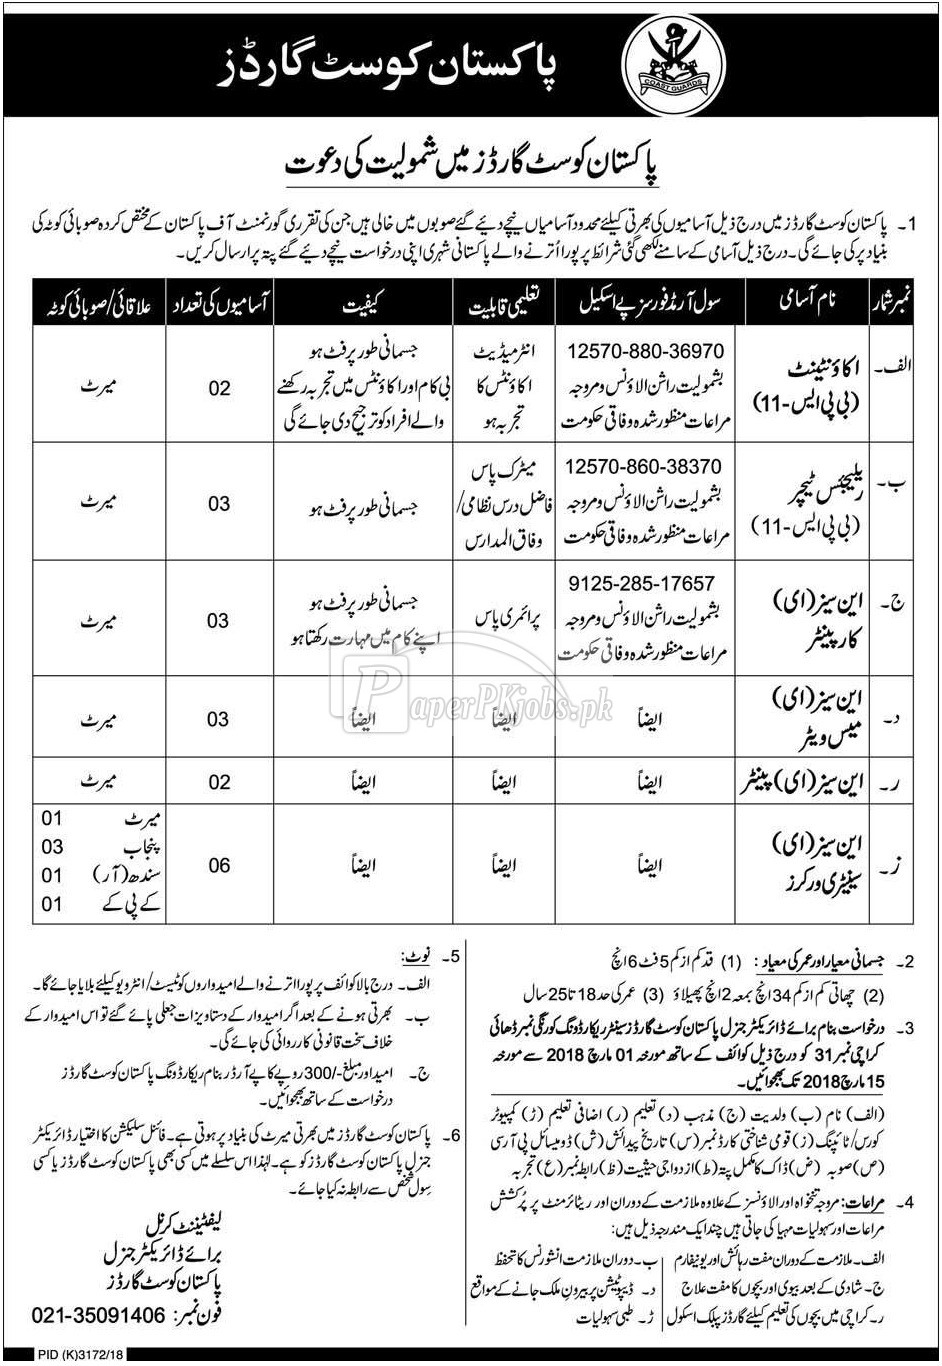 Pakistan Coast Guards Jobs 2018(1)